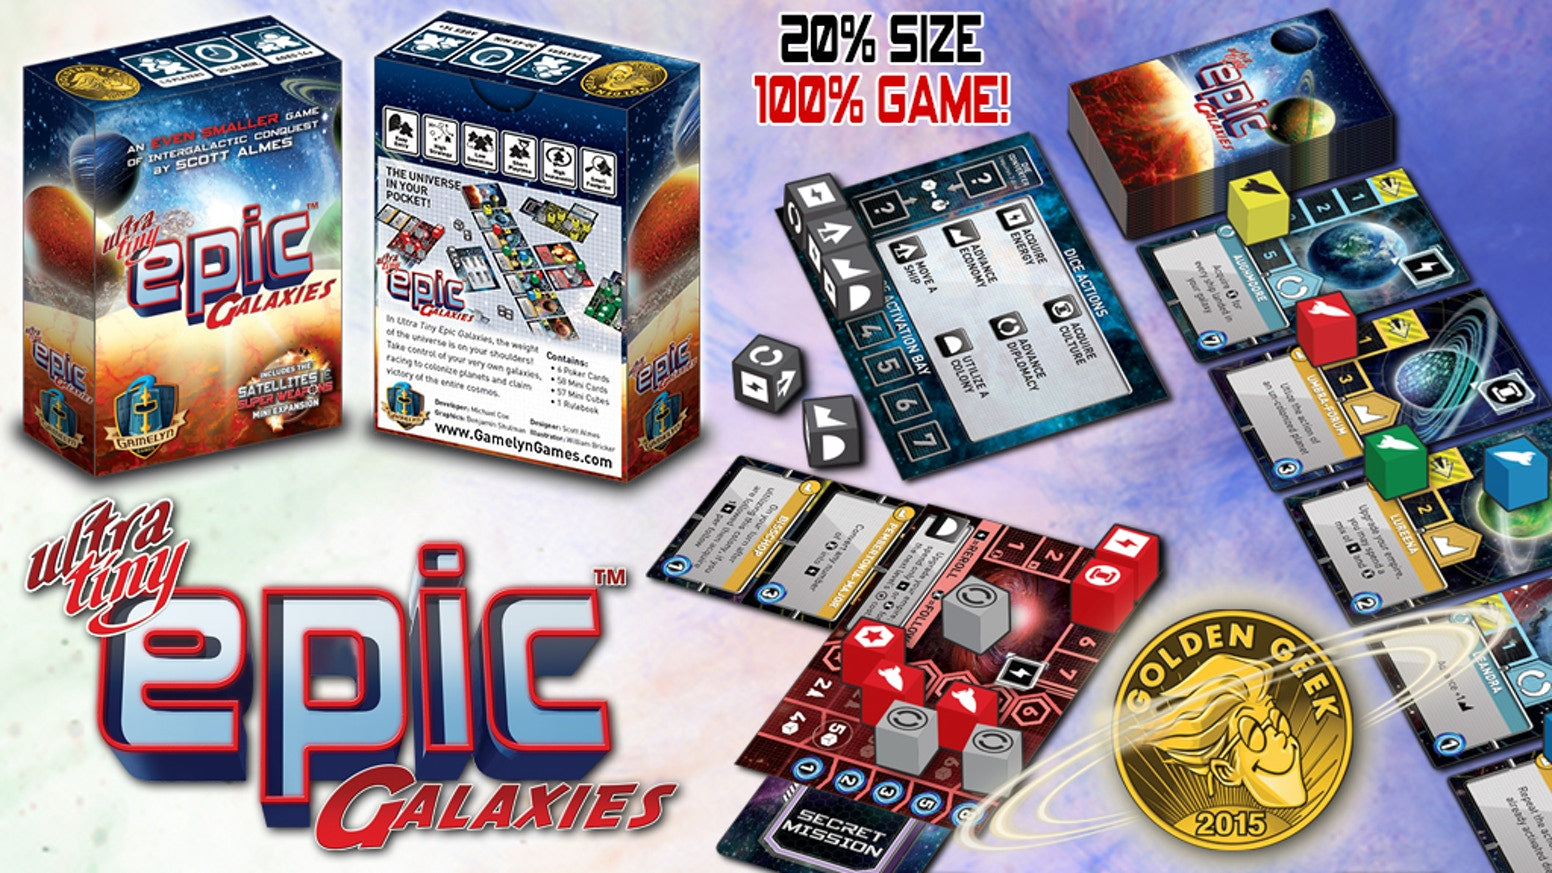 Ultra Tiny Epic Galaxies | Kessel Run Games Inc.